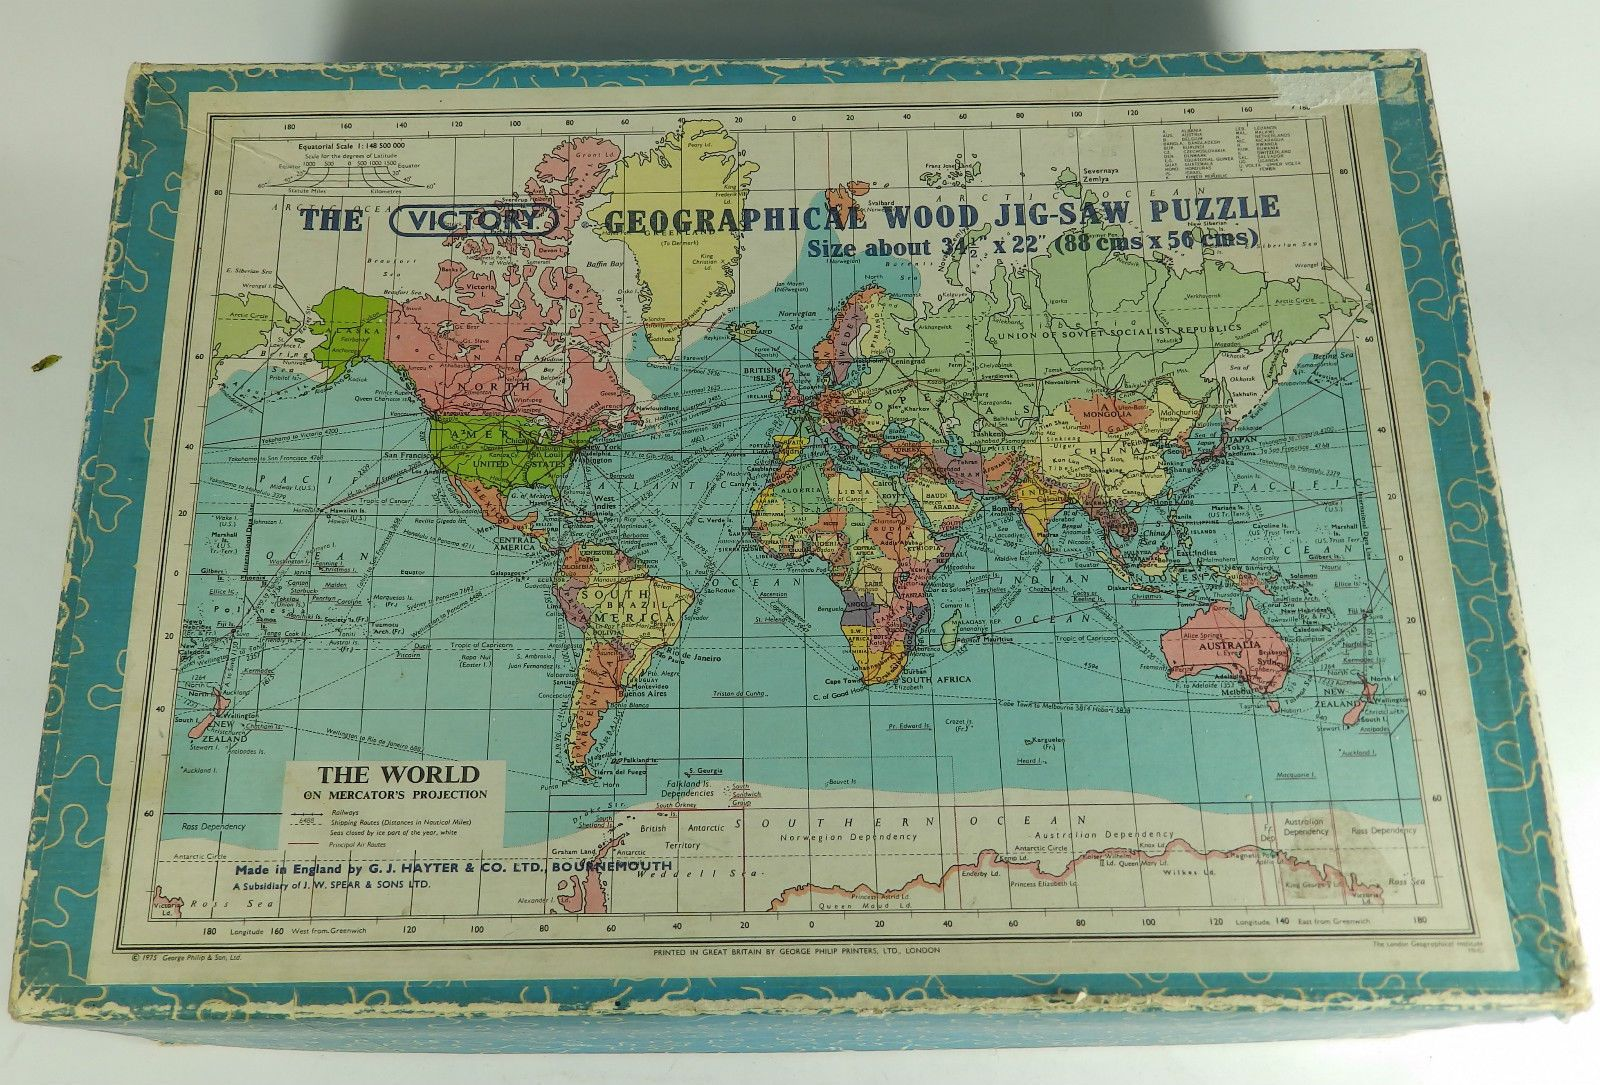 Vintage victory wooden jigsaw puzzle world map complete ebay puzzle shop vintage victory wooden jigsaw puzzle world map complete ebay gumiabroncs Images